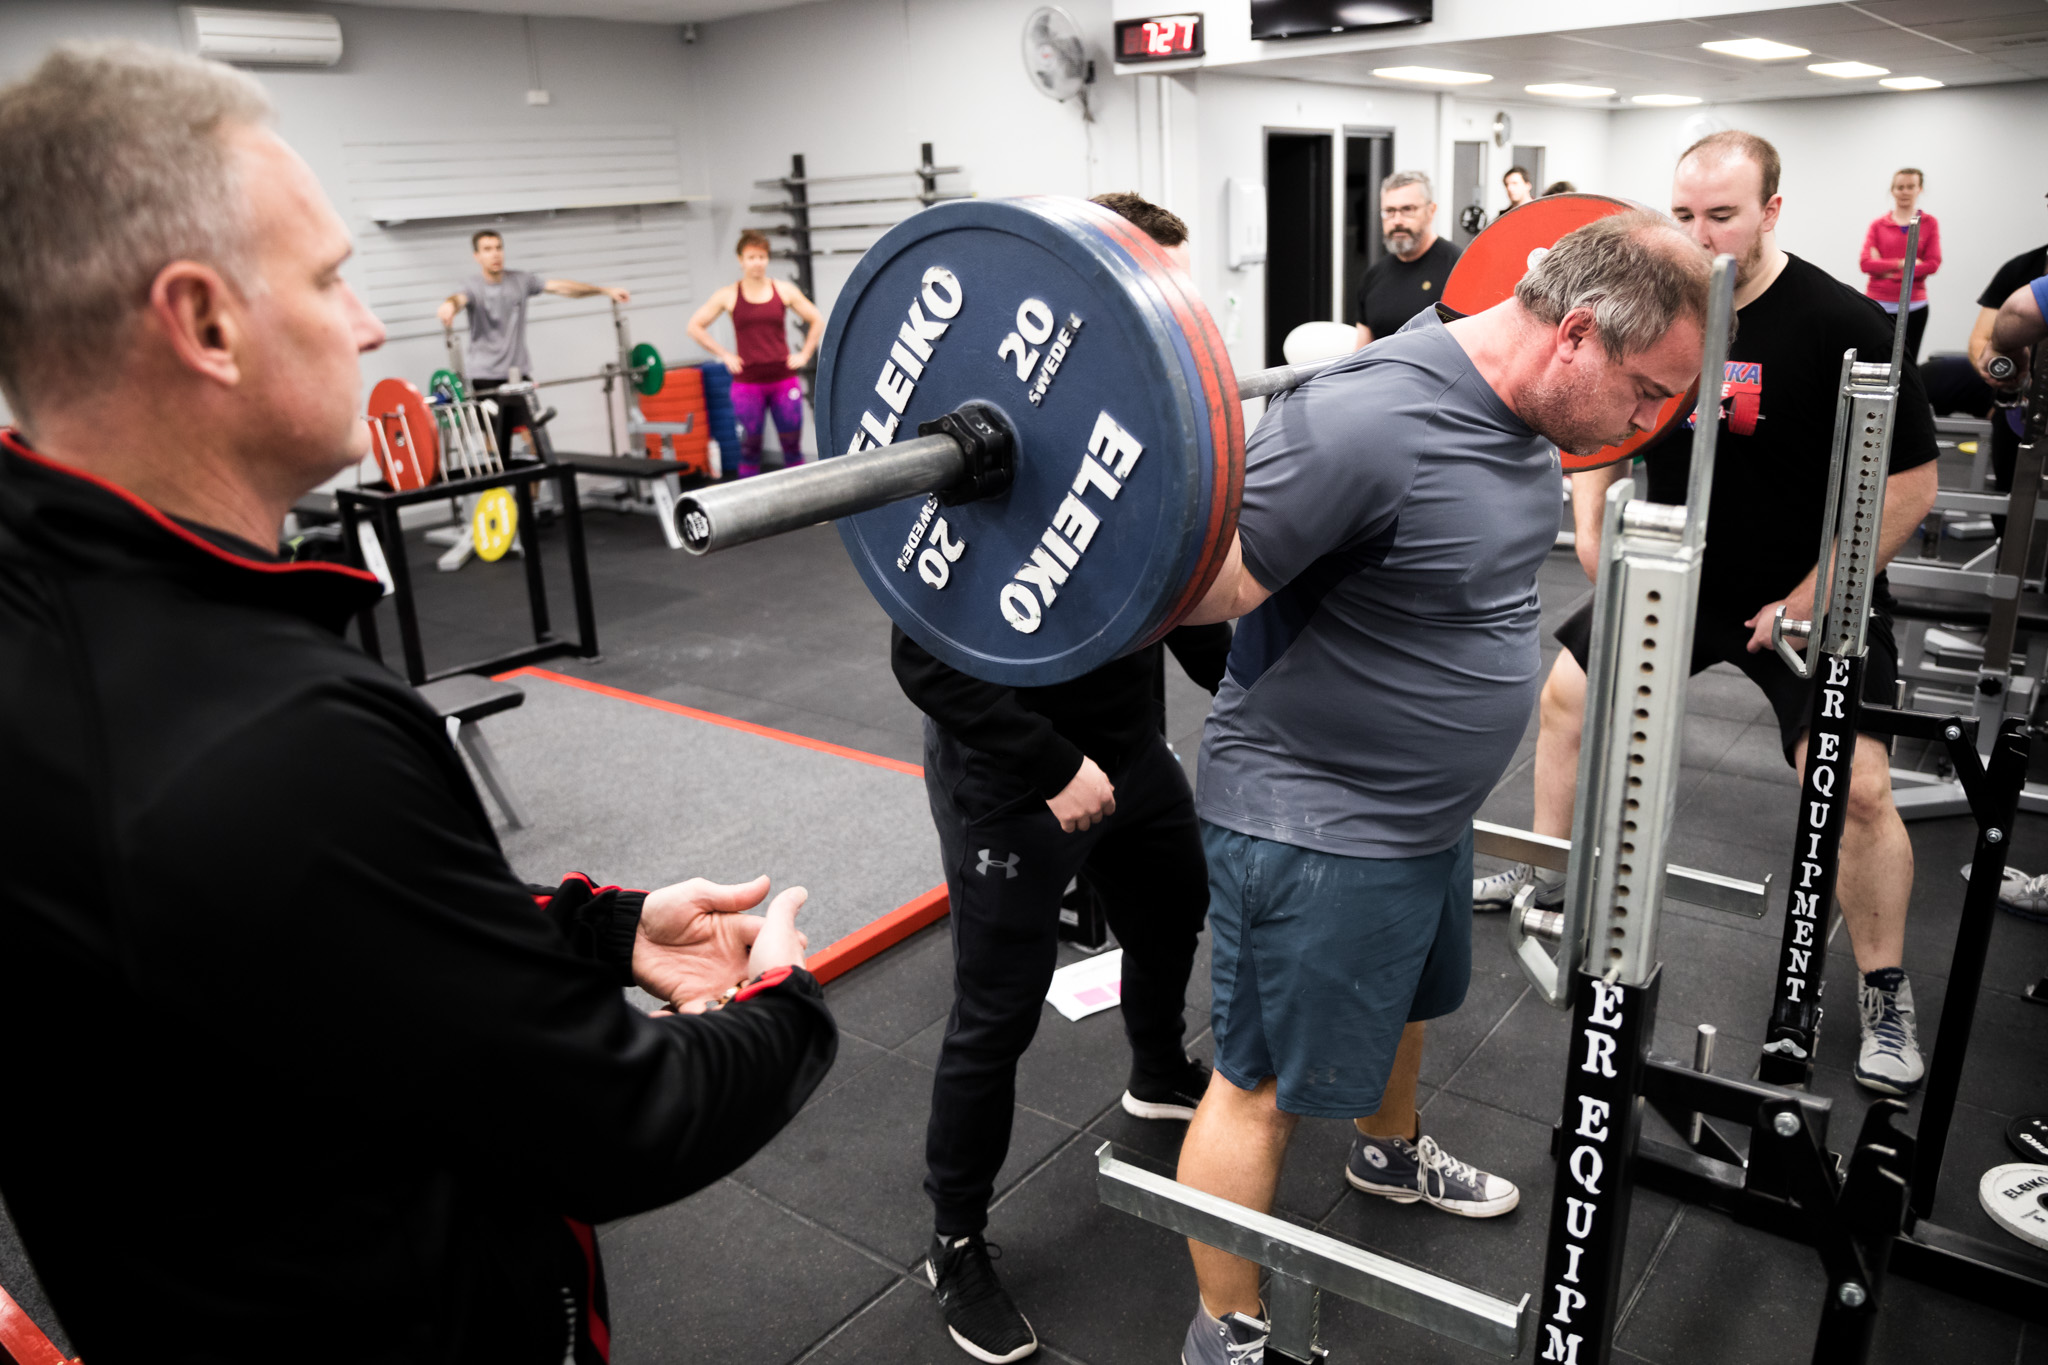 Off-peak Membership - Our off-peak membership is perfect for those who train during the day and do not need access to the gym all the time. Hours are 9am-3pm daily, including weekends.$15 P/W